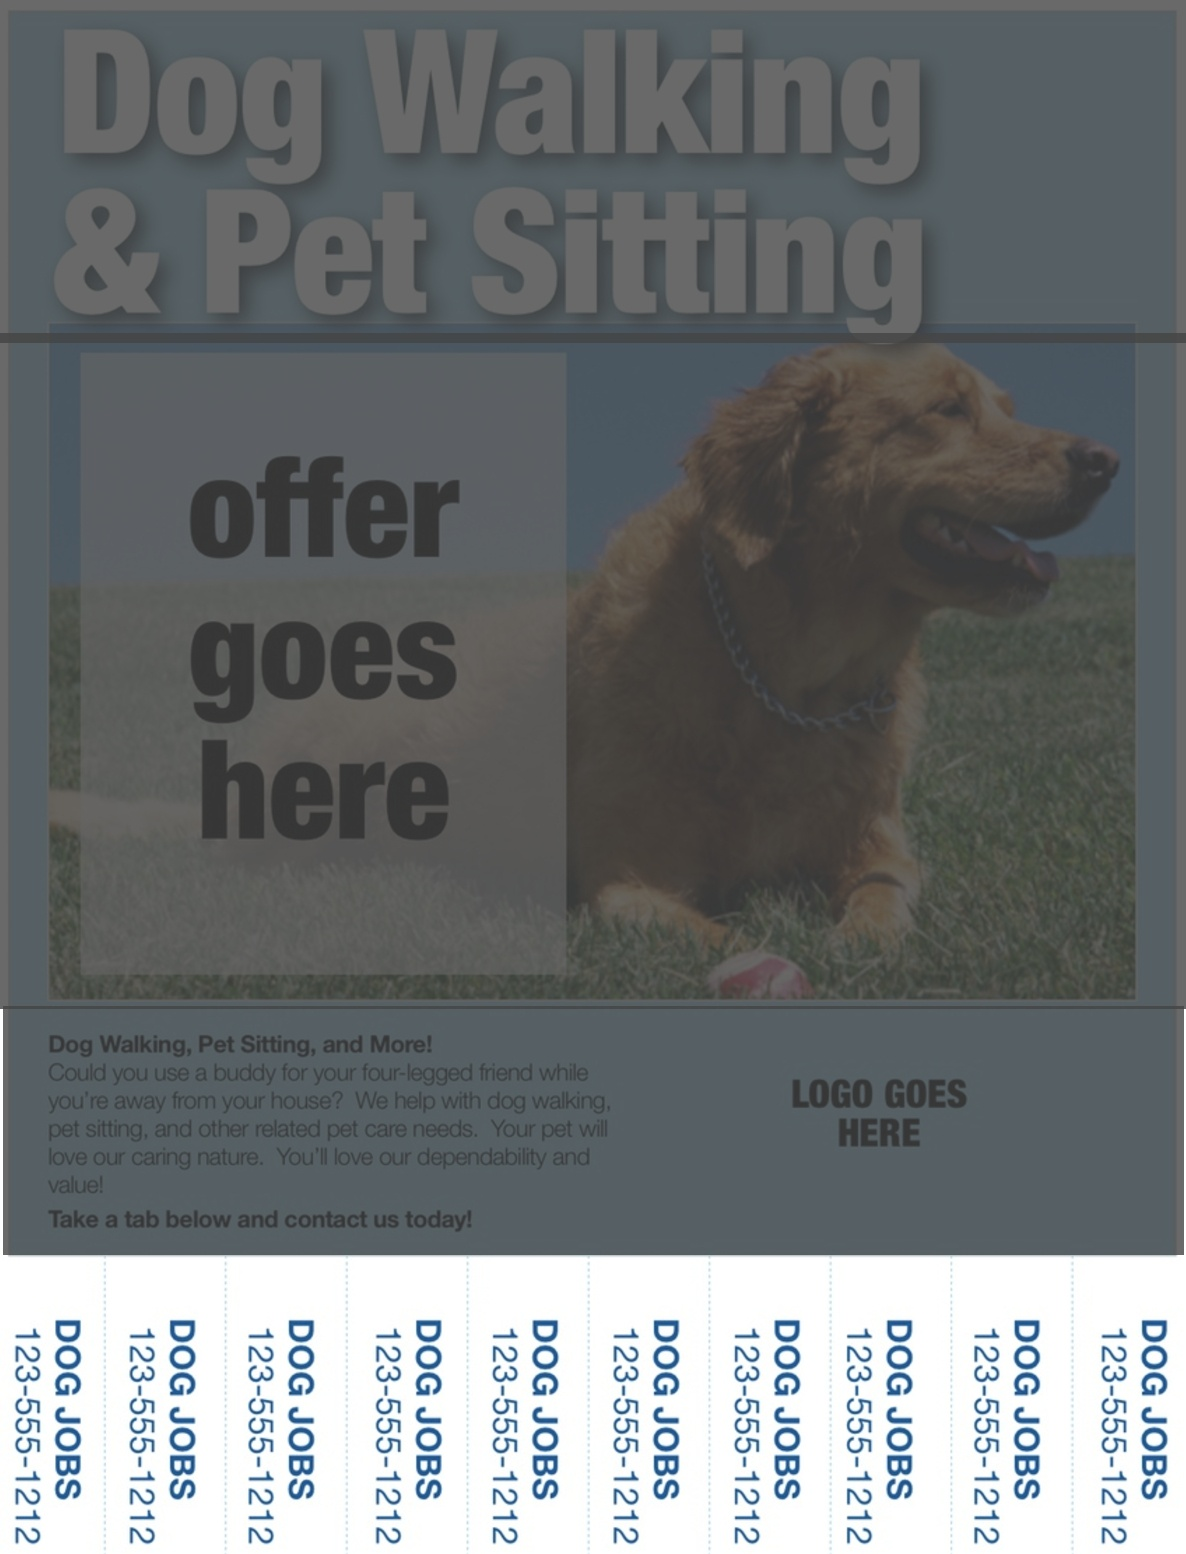 dog walking flyers contact information